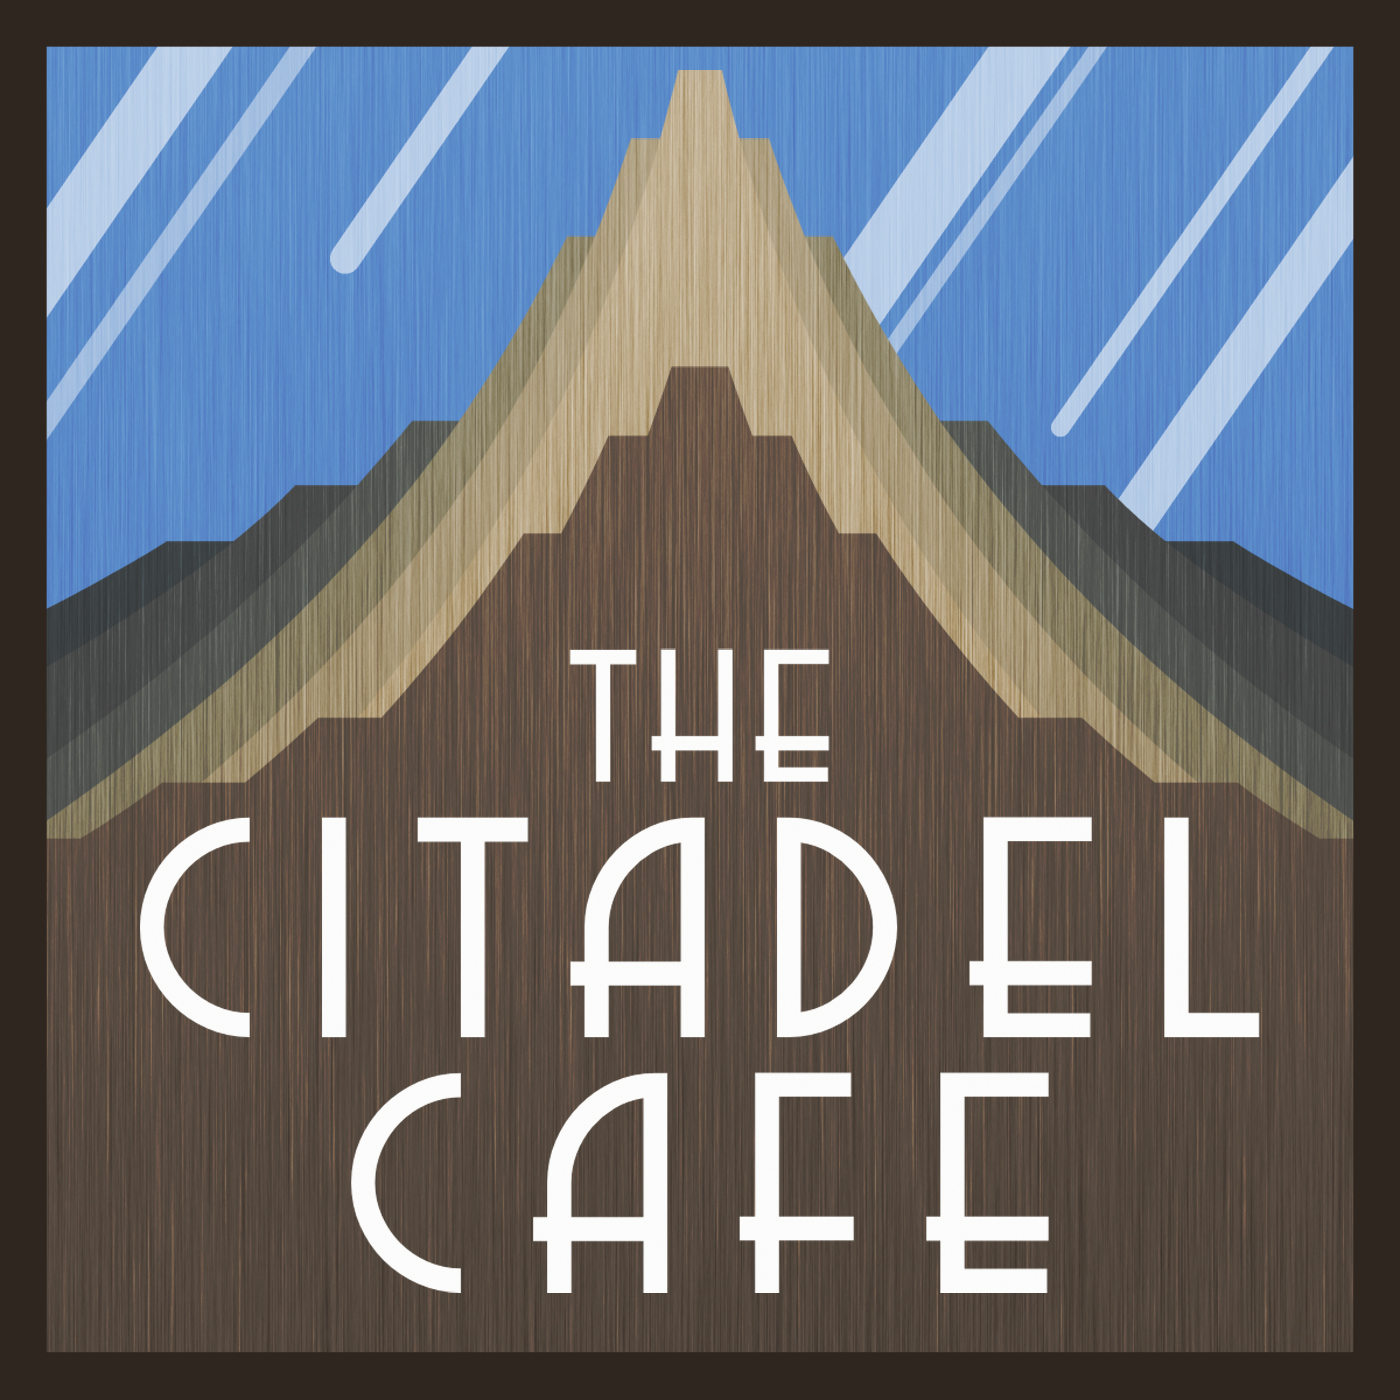 The Citadel Cafe: A Sci-Fi and Fantasy Podcast